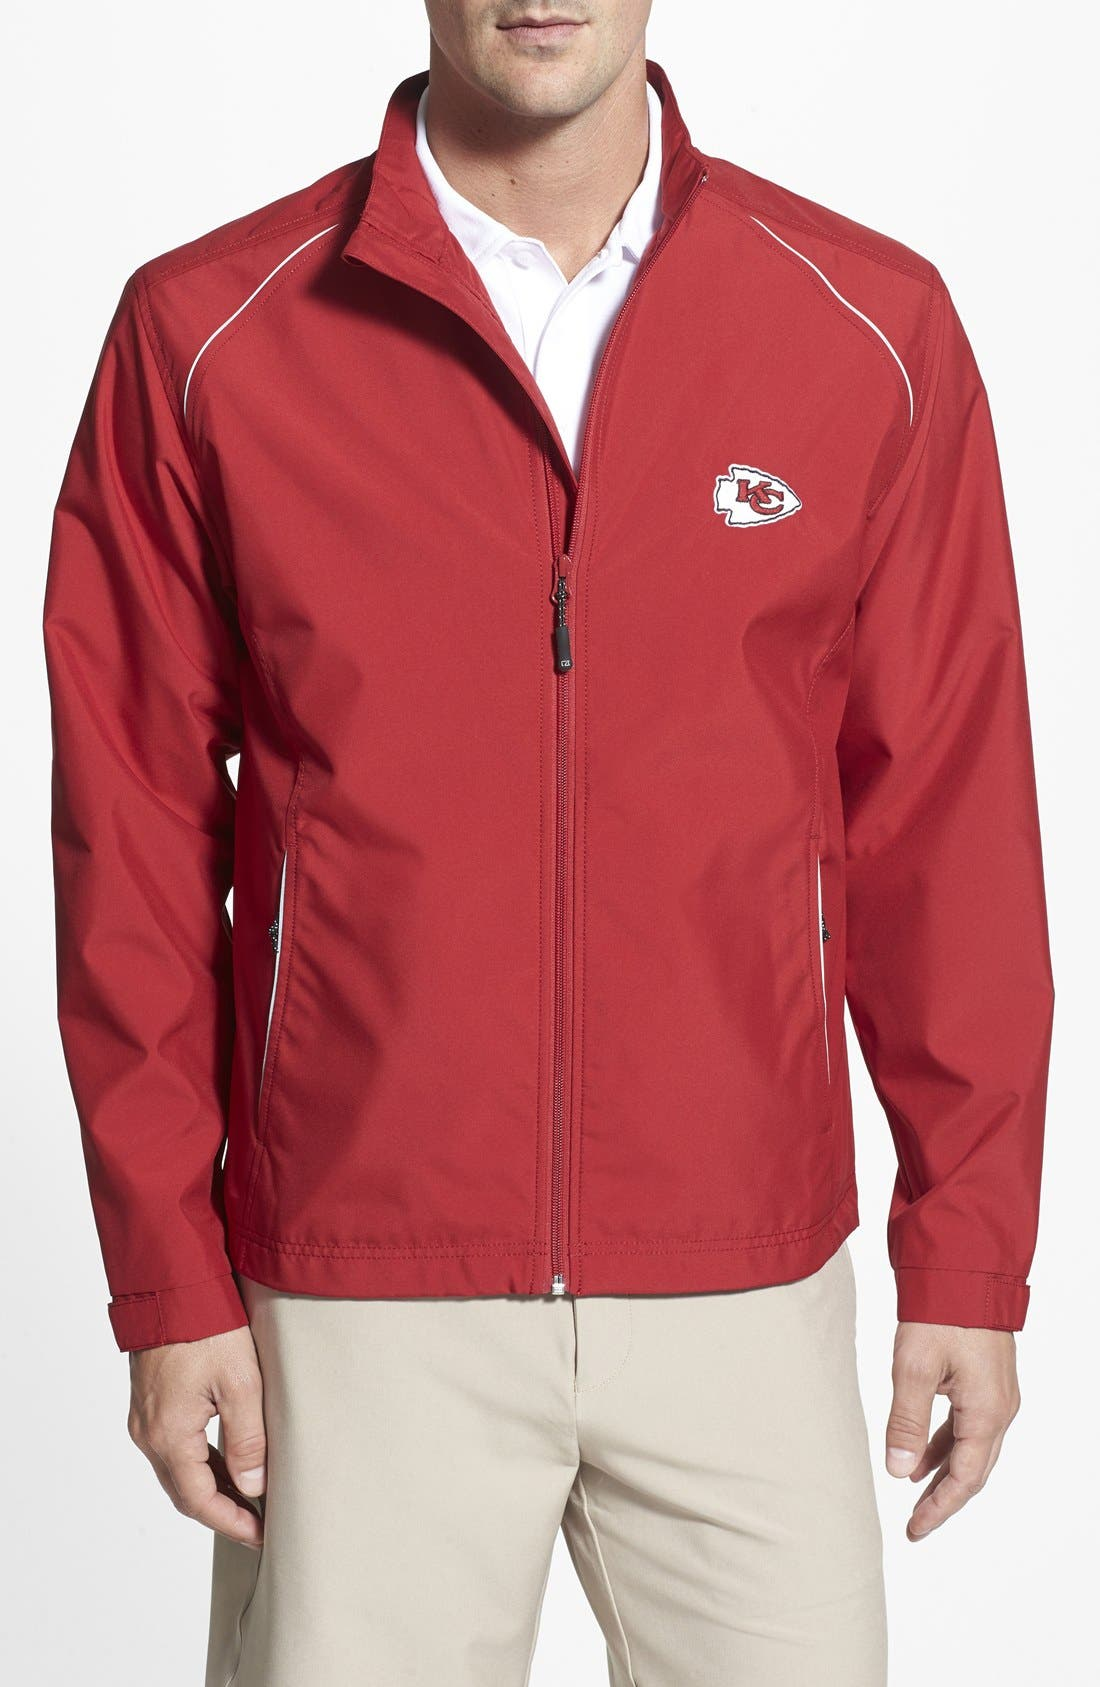 Kansas City Chiefs - Beacon WeatherTec Wind & Water Resistant Jacket,                             Main thumbnail 1, color,                             Cardinal Red